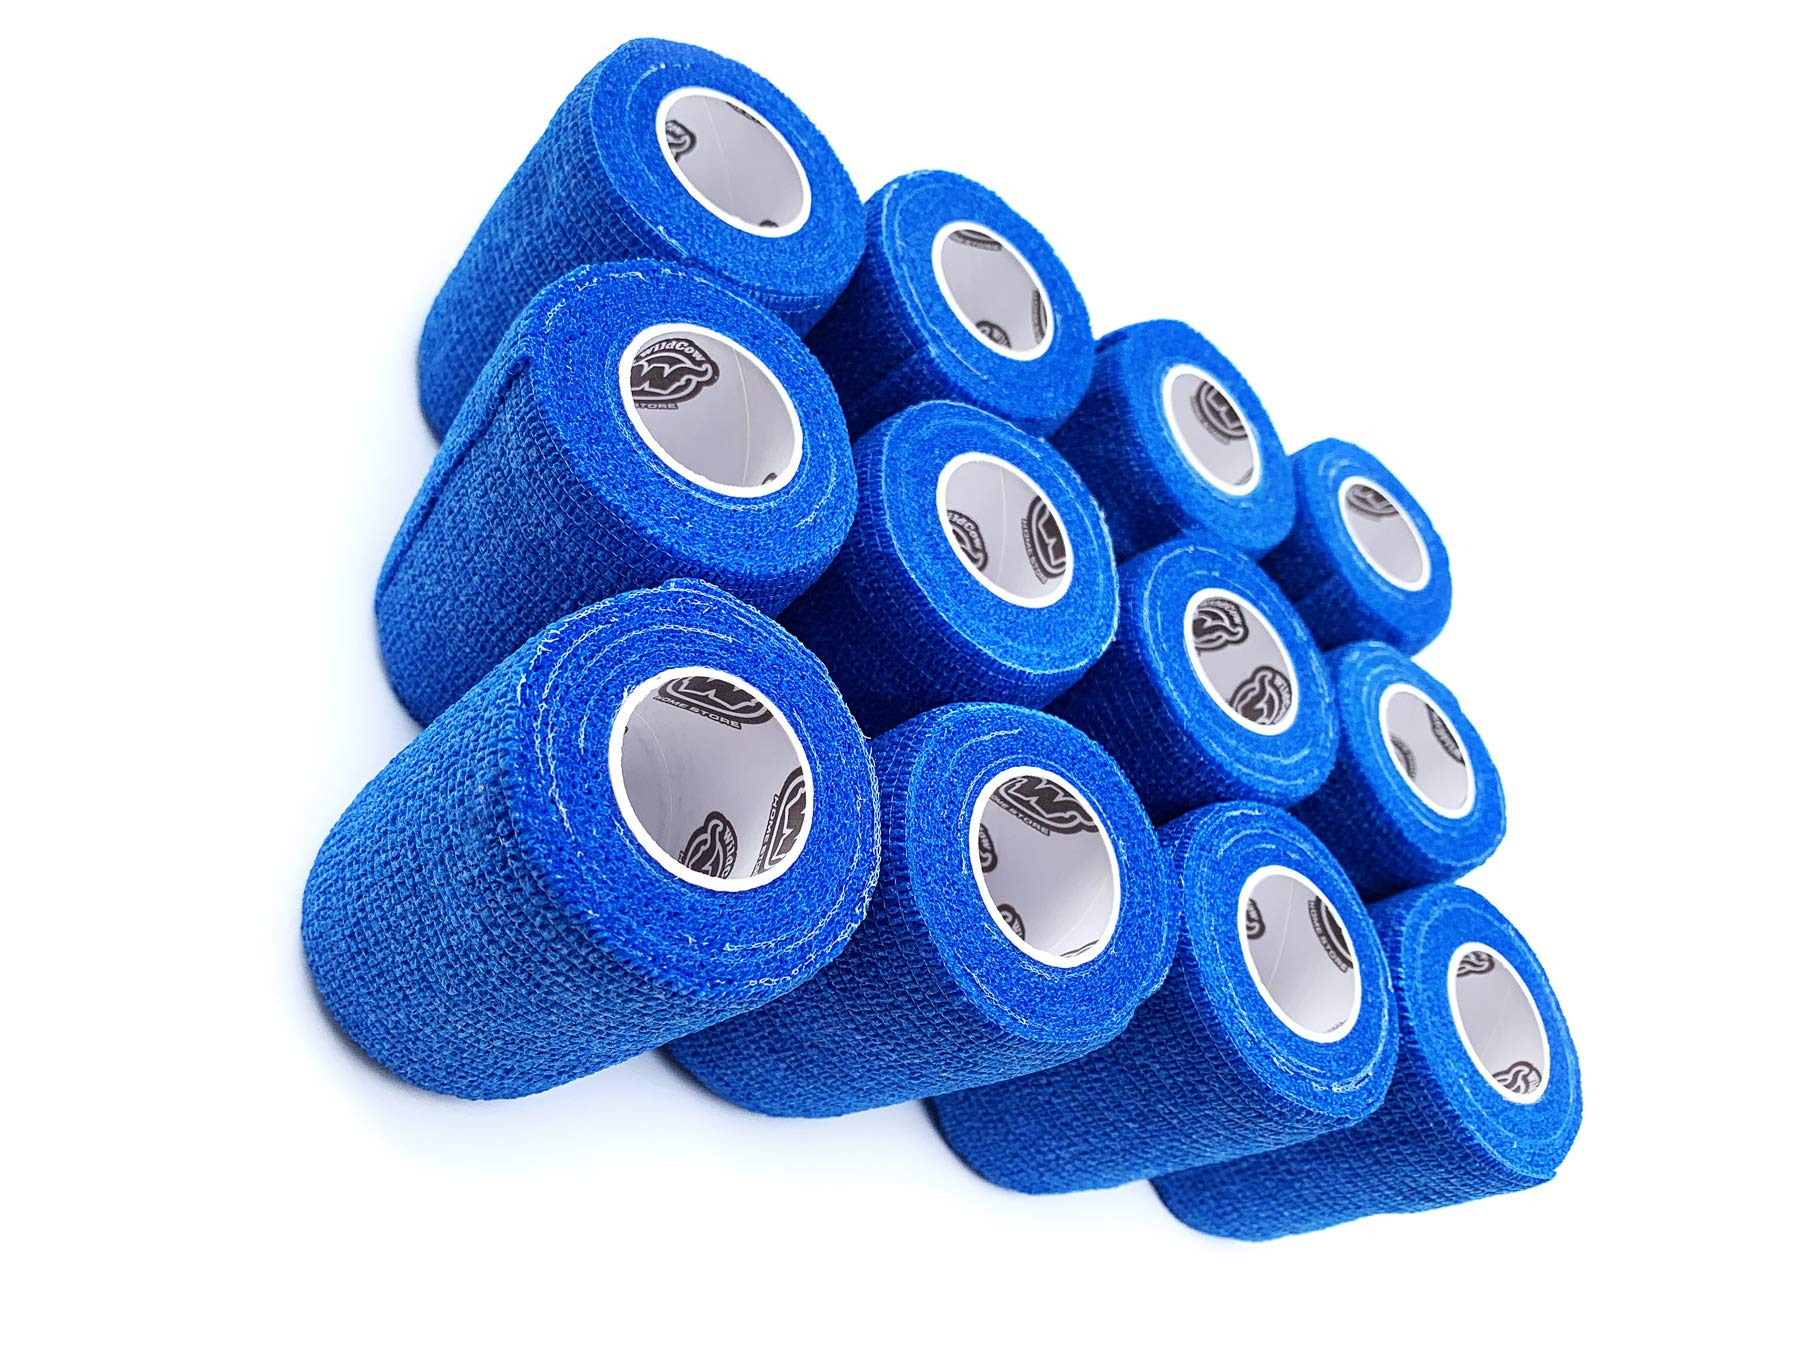 WildCow 3'' Blue Vet Wrap Tape Bulk, 12 Pack Cohesive Bandage Wrap, Self Adherent Grip Rolls by WildCow